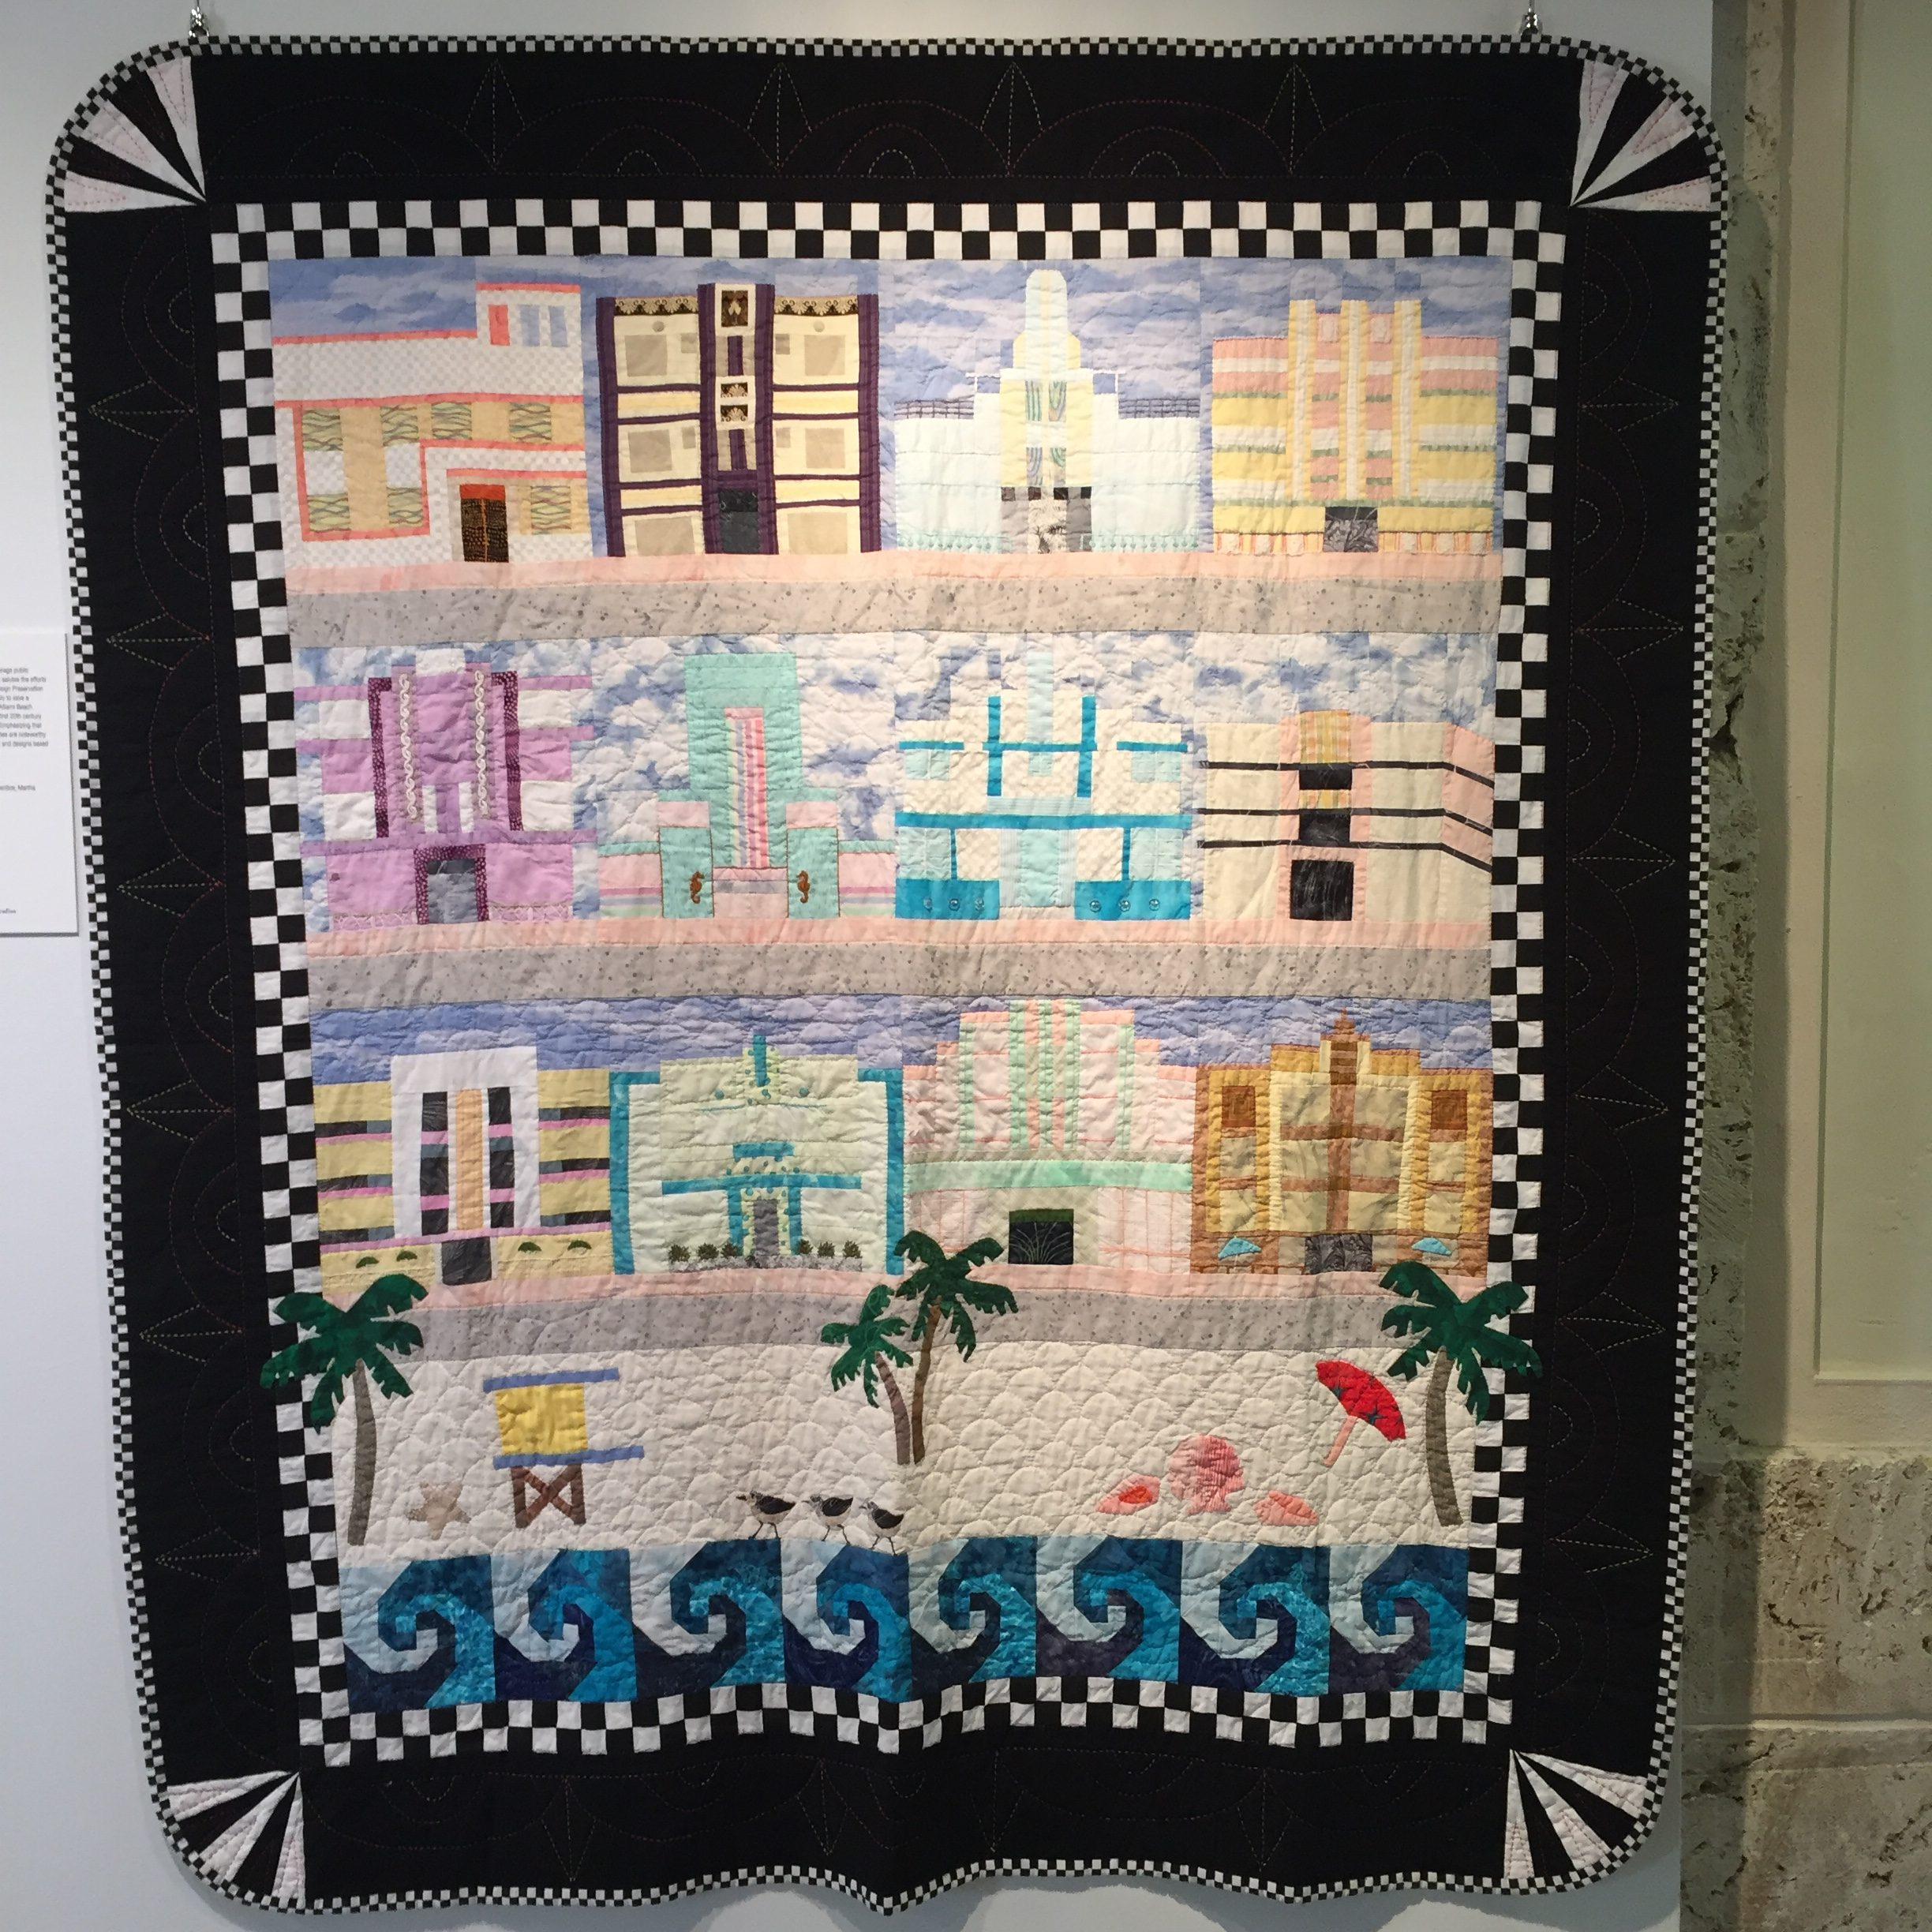 """Art Deco SoBe:  Among the successes of The Villagers is their ability to encourage public awareness of the Country's distinctive architecture.  This quilt salutes the efforts of activists like Barbara Baer Capitman, founder of Miami Design Preservation League (1977) who, along with many others, worked tirelessly to save a number of Art Deco (ca. 1929-1940) buildings in the City of Miami Beach.  These South Beach (SoBe) buildings represent the nation's first 20th century Historic District to be listed in the National Register (1979).  Emphasizing that they are located in a seaside resort, SoBe's Tropical Deco sites are noteworthy for their pastel colors, floral and aquatic applied decoration, and designs based on ocean liners.       Artists: Louise Petrine, Joyce Seibert, Toni Garcia, Cathy Prentice, Martha Stockhausen, Joan Bounds, Jo Walters  2001-2002, 50"""" wide x 60"""" long"""